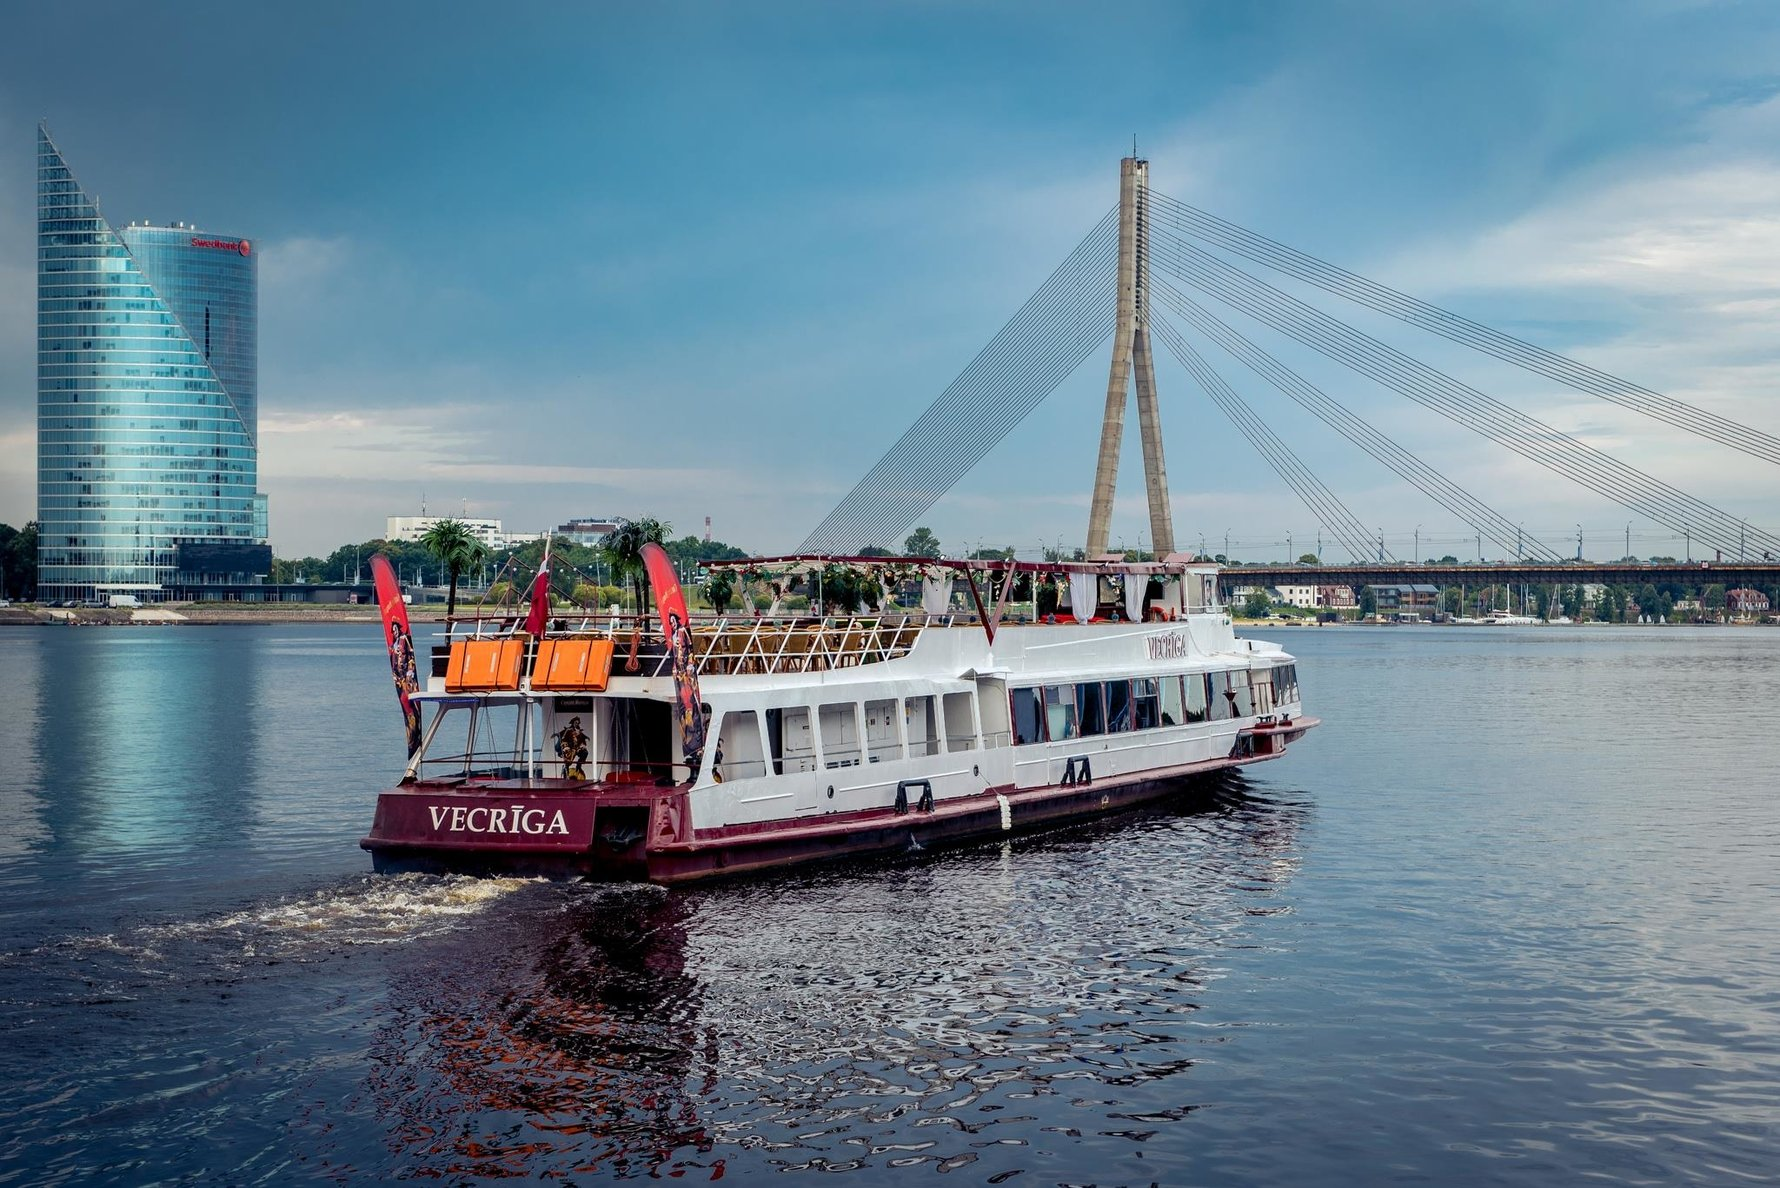 The Vecrīga cruise ship on the River Daugava